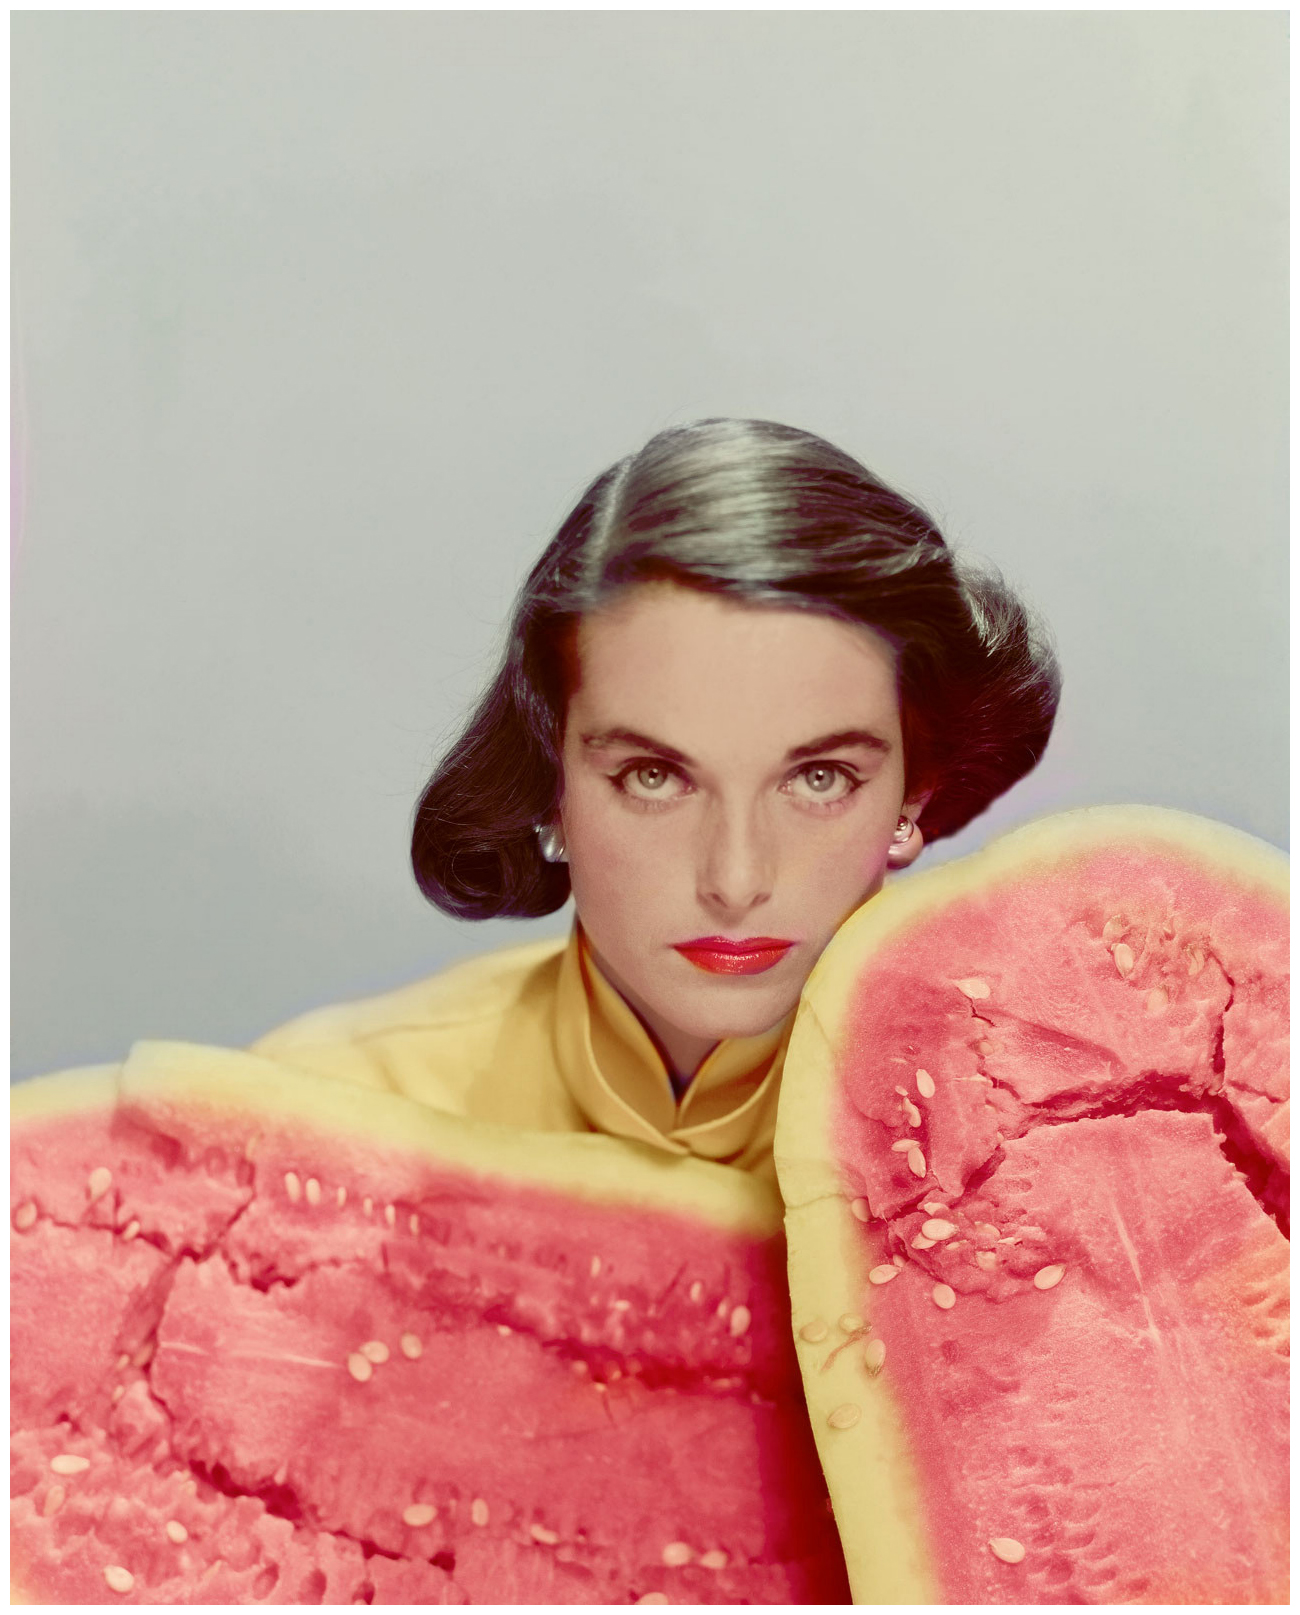 http://pleasurephoto.files.wordpress.com/2013/09/colors-of-models-make-up-accentuated-by-the-color-of-an-open-watermelon-1951-erwin-blumenfeld.jpg